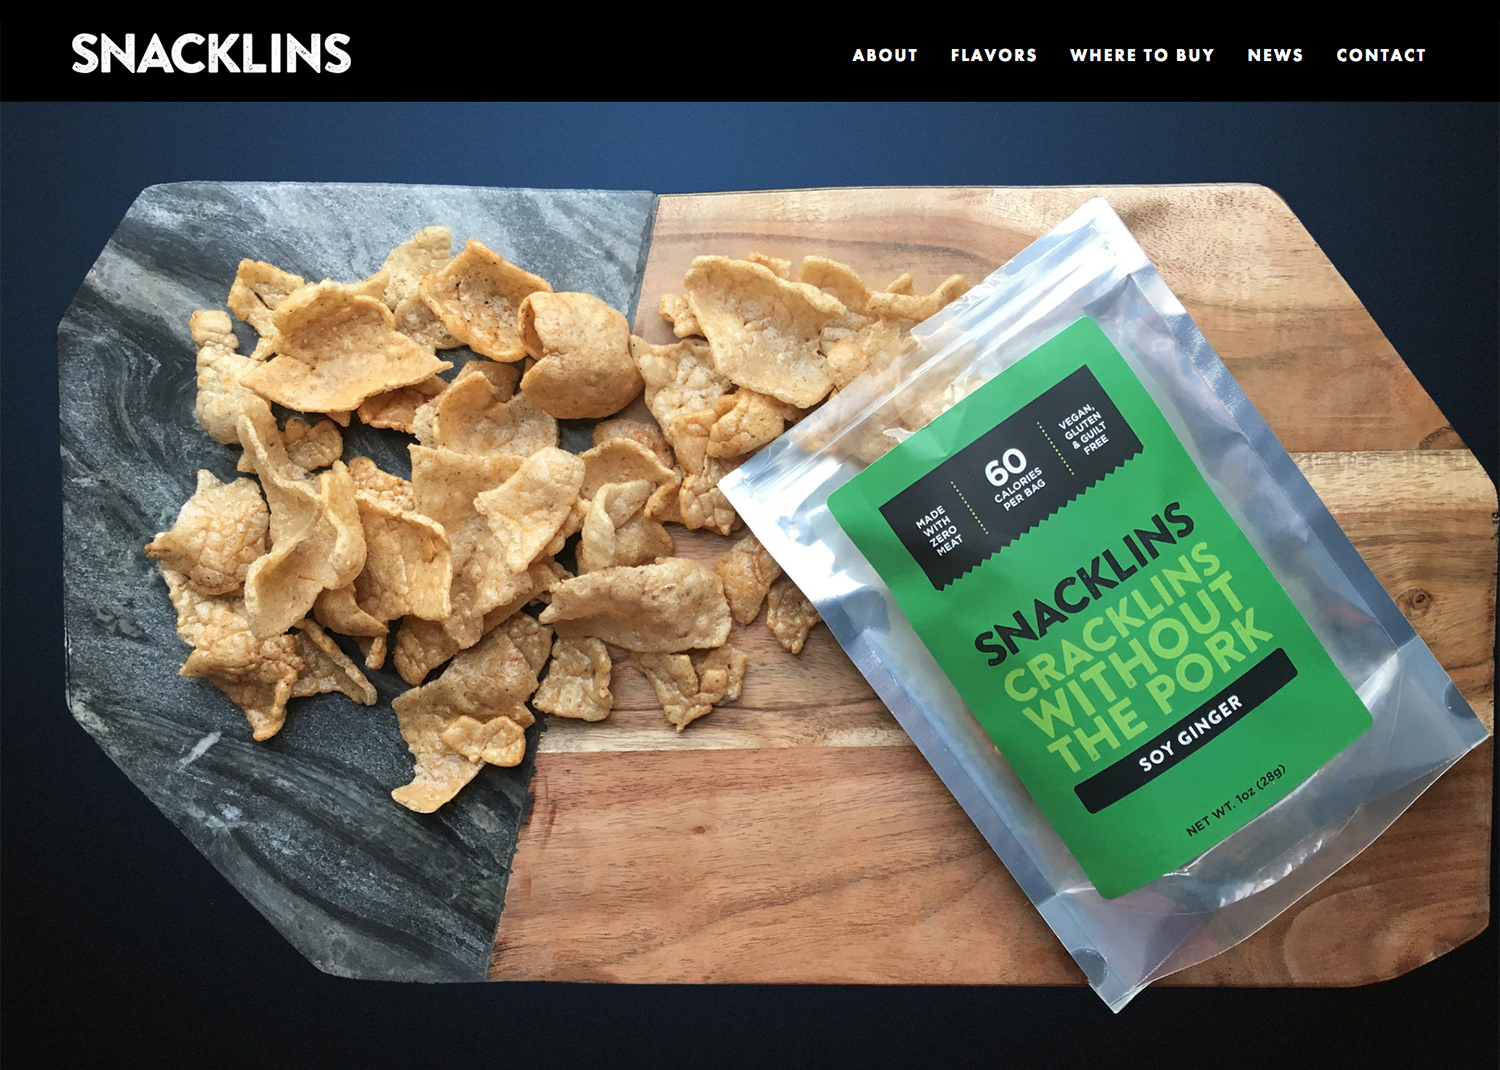 Snacklins_website.jpg